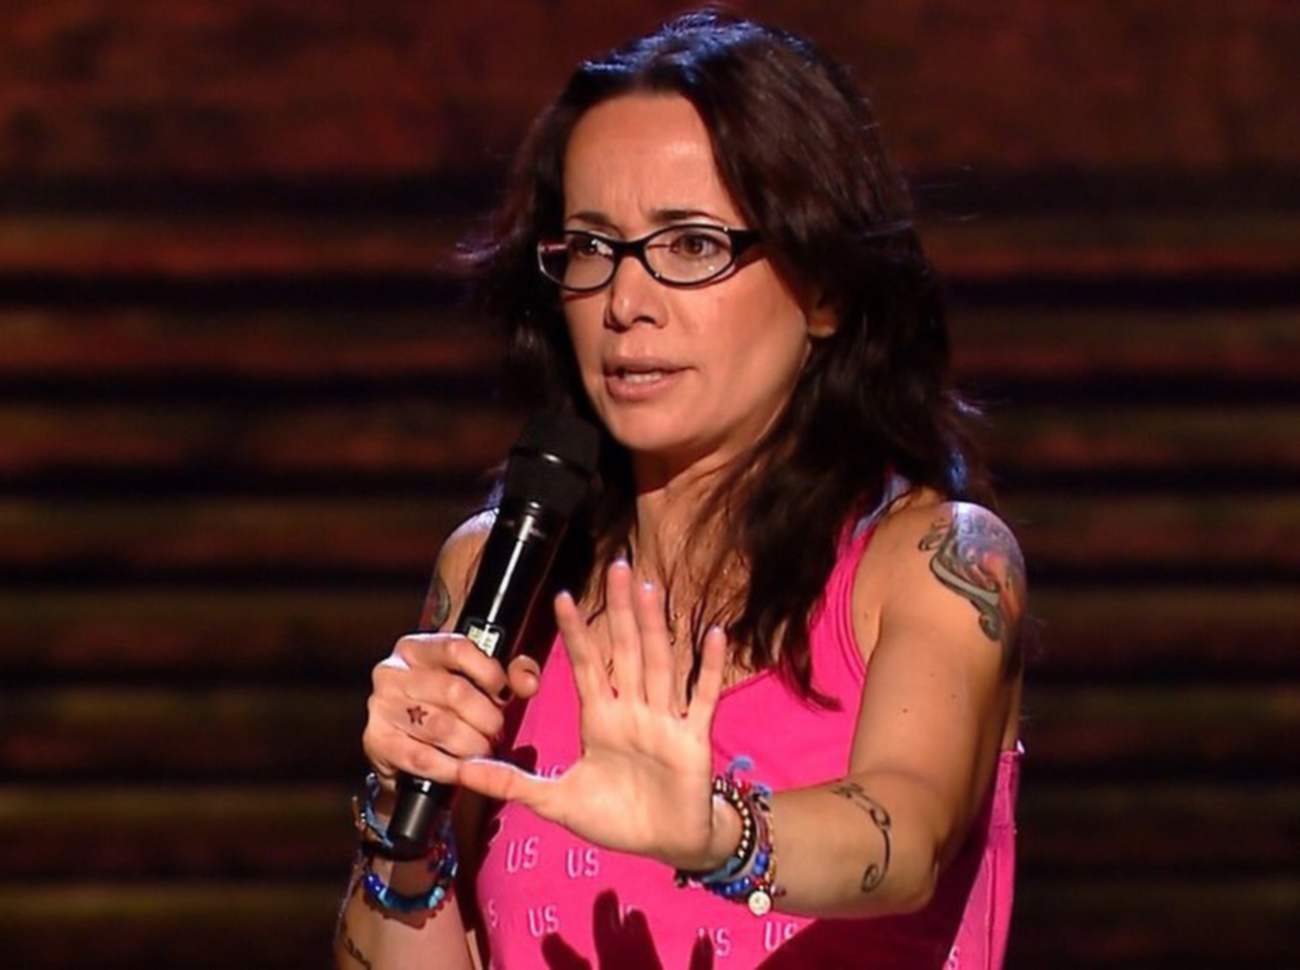 Janeane Garofalo Screensavers